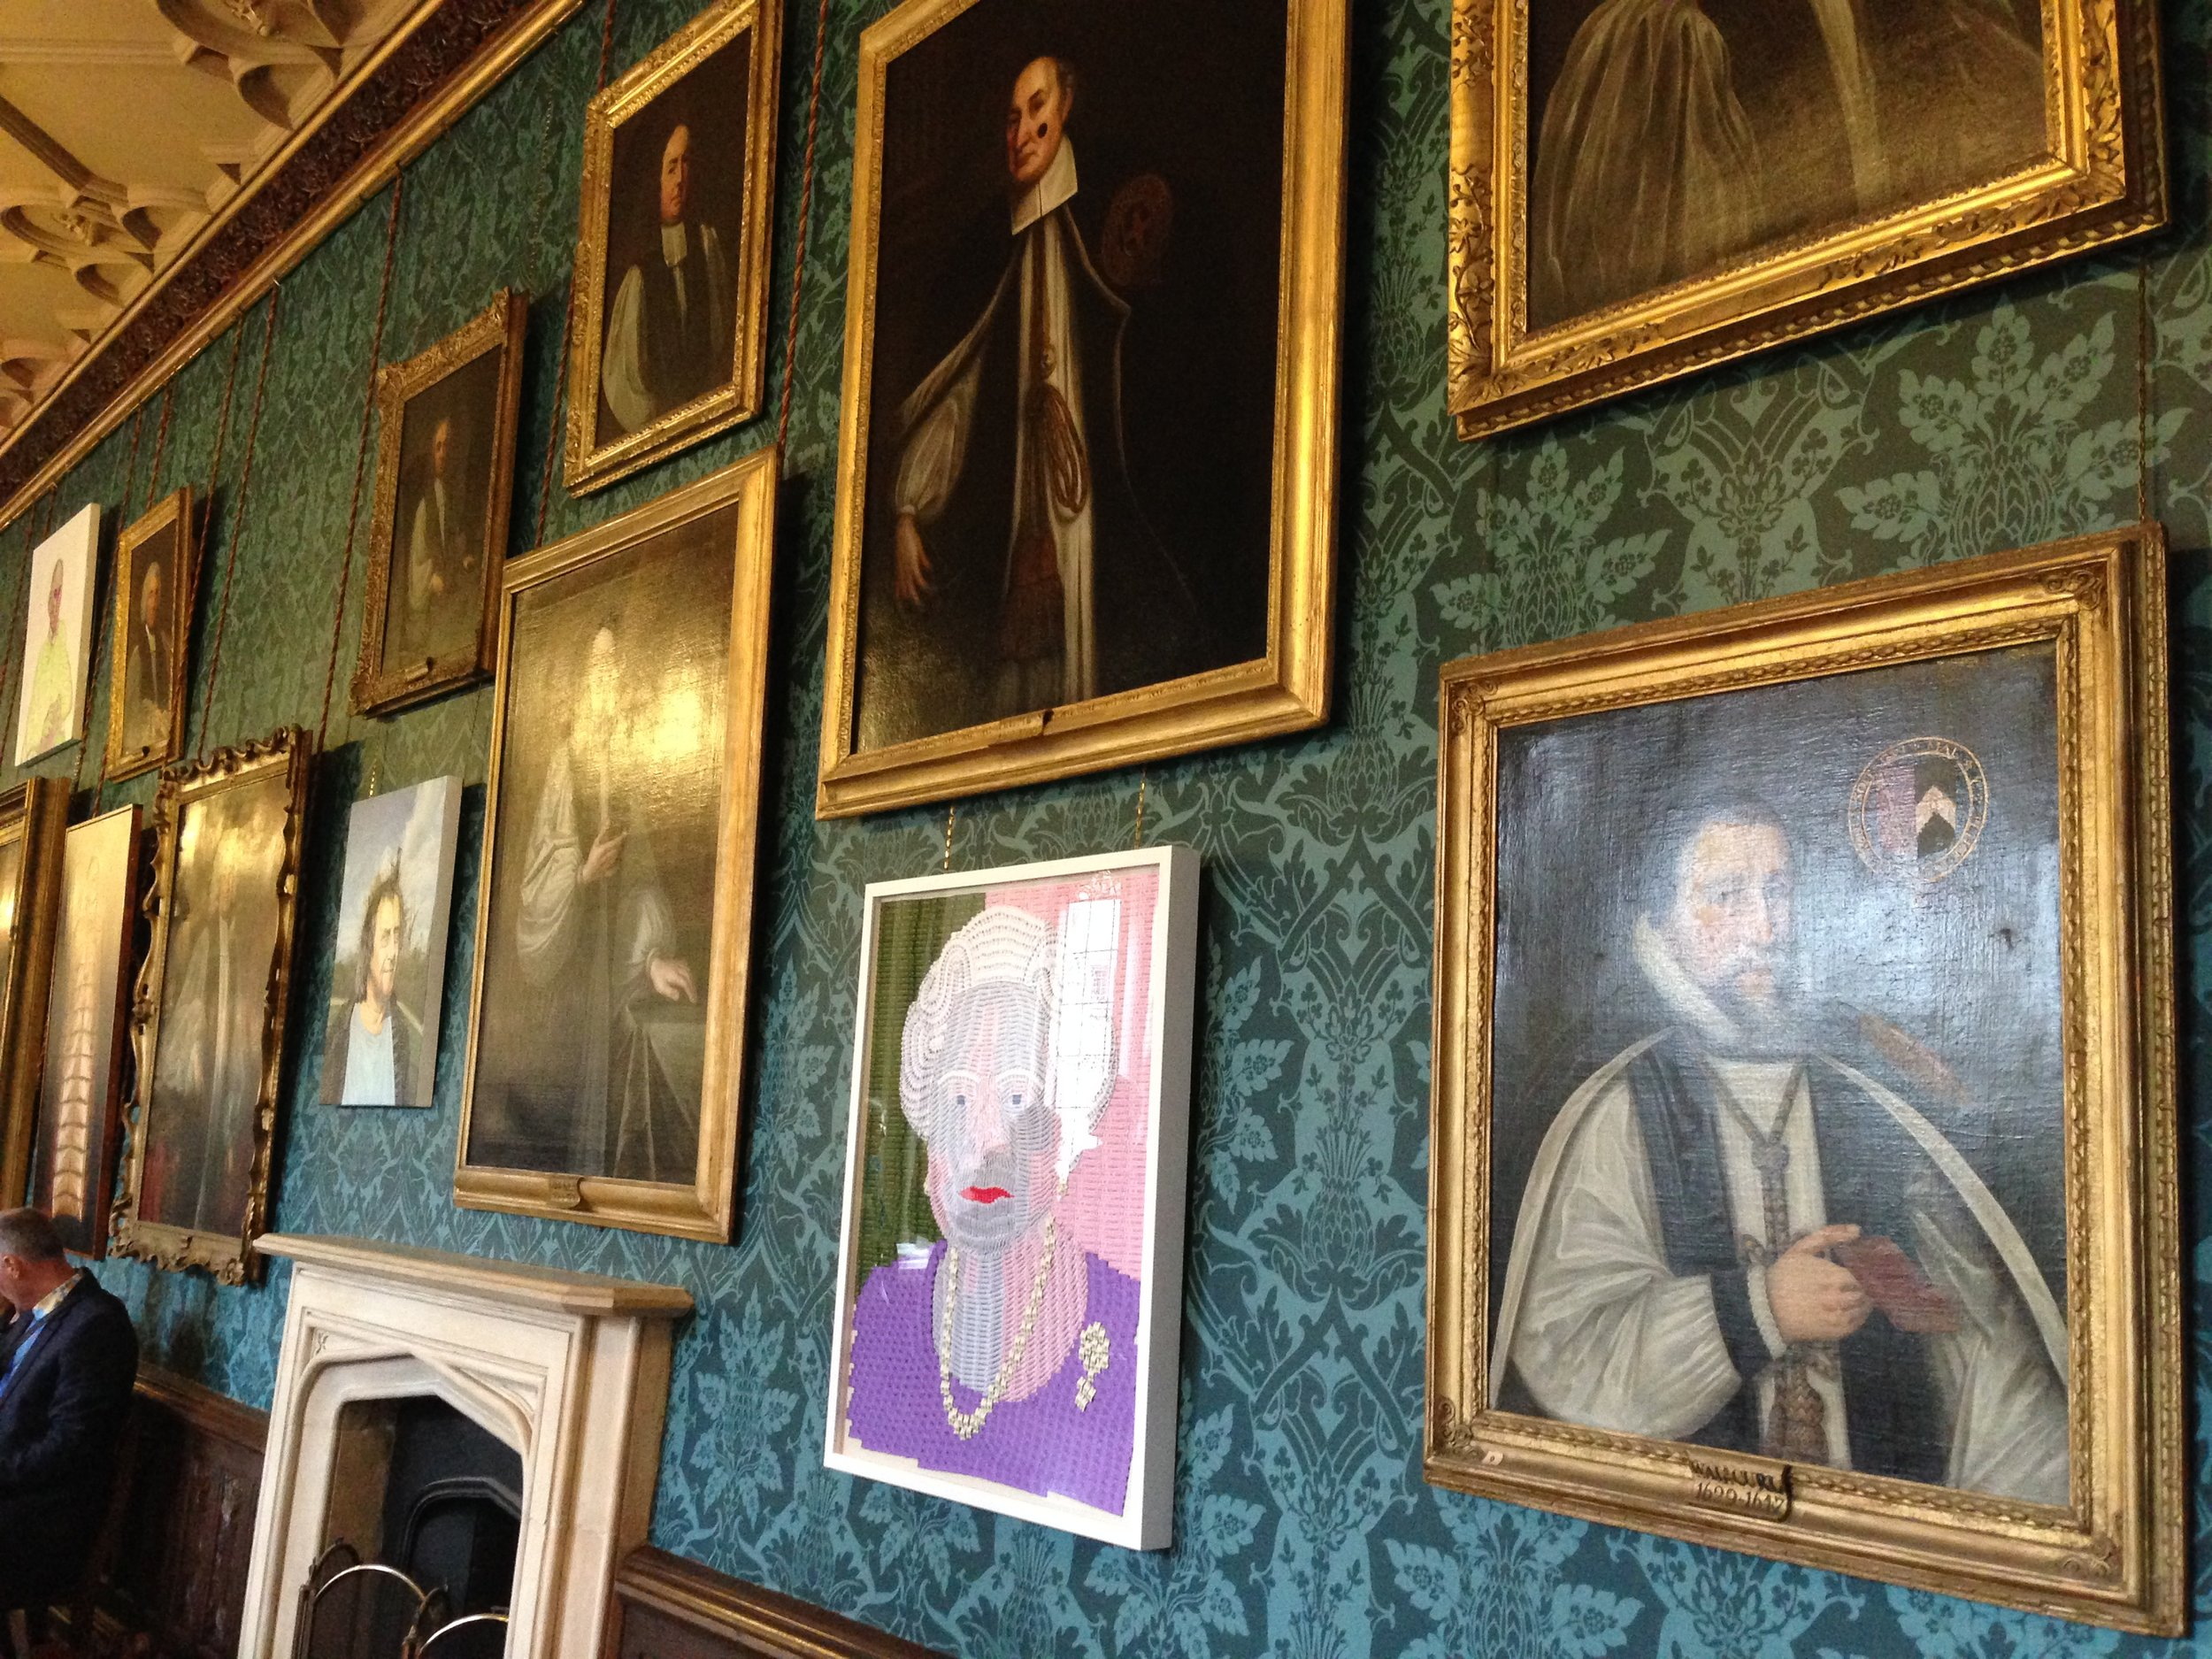 Queens WW1 portrait proudly hung in the Long Gallery with historic portraits of past Bishops. The Exhibition continues until 22nd October 2016 at The Bishop's Palace, off Market Place, Wells, Somerset BA5 2RA inclusive 10am - 6pm.